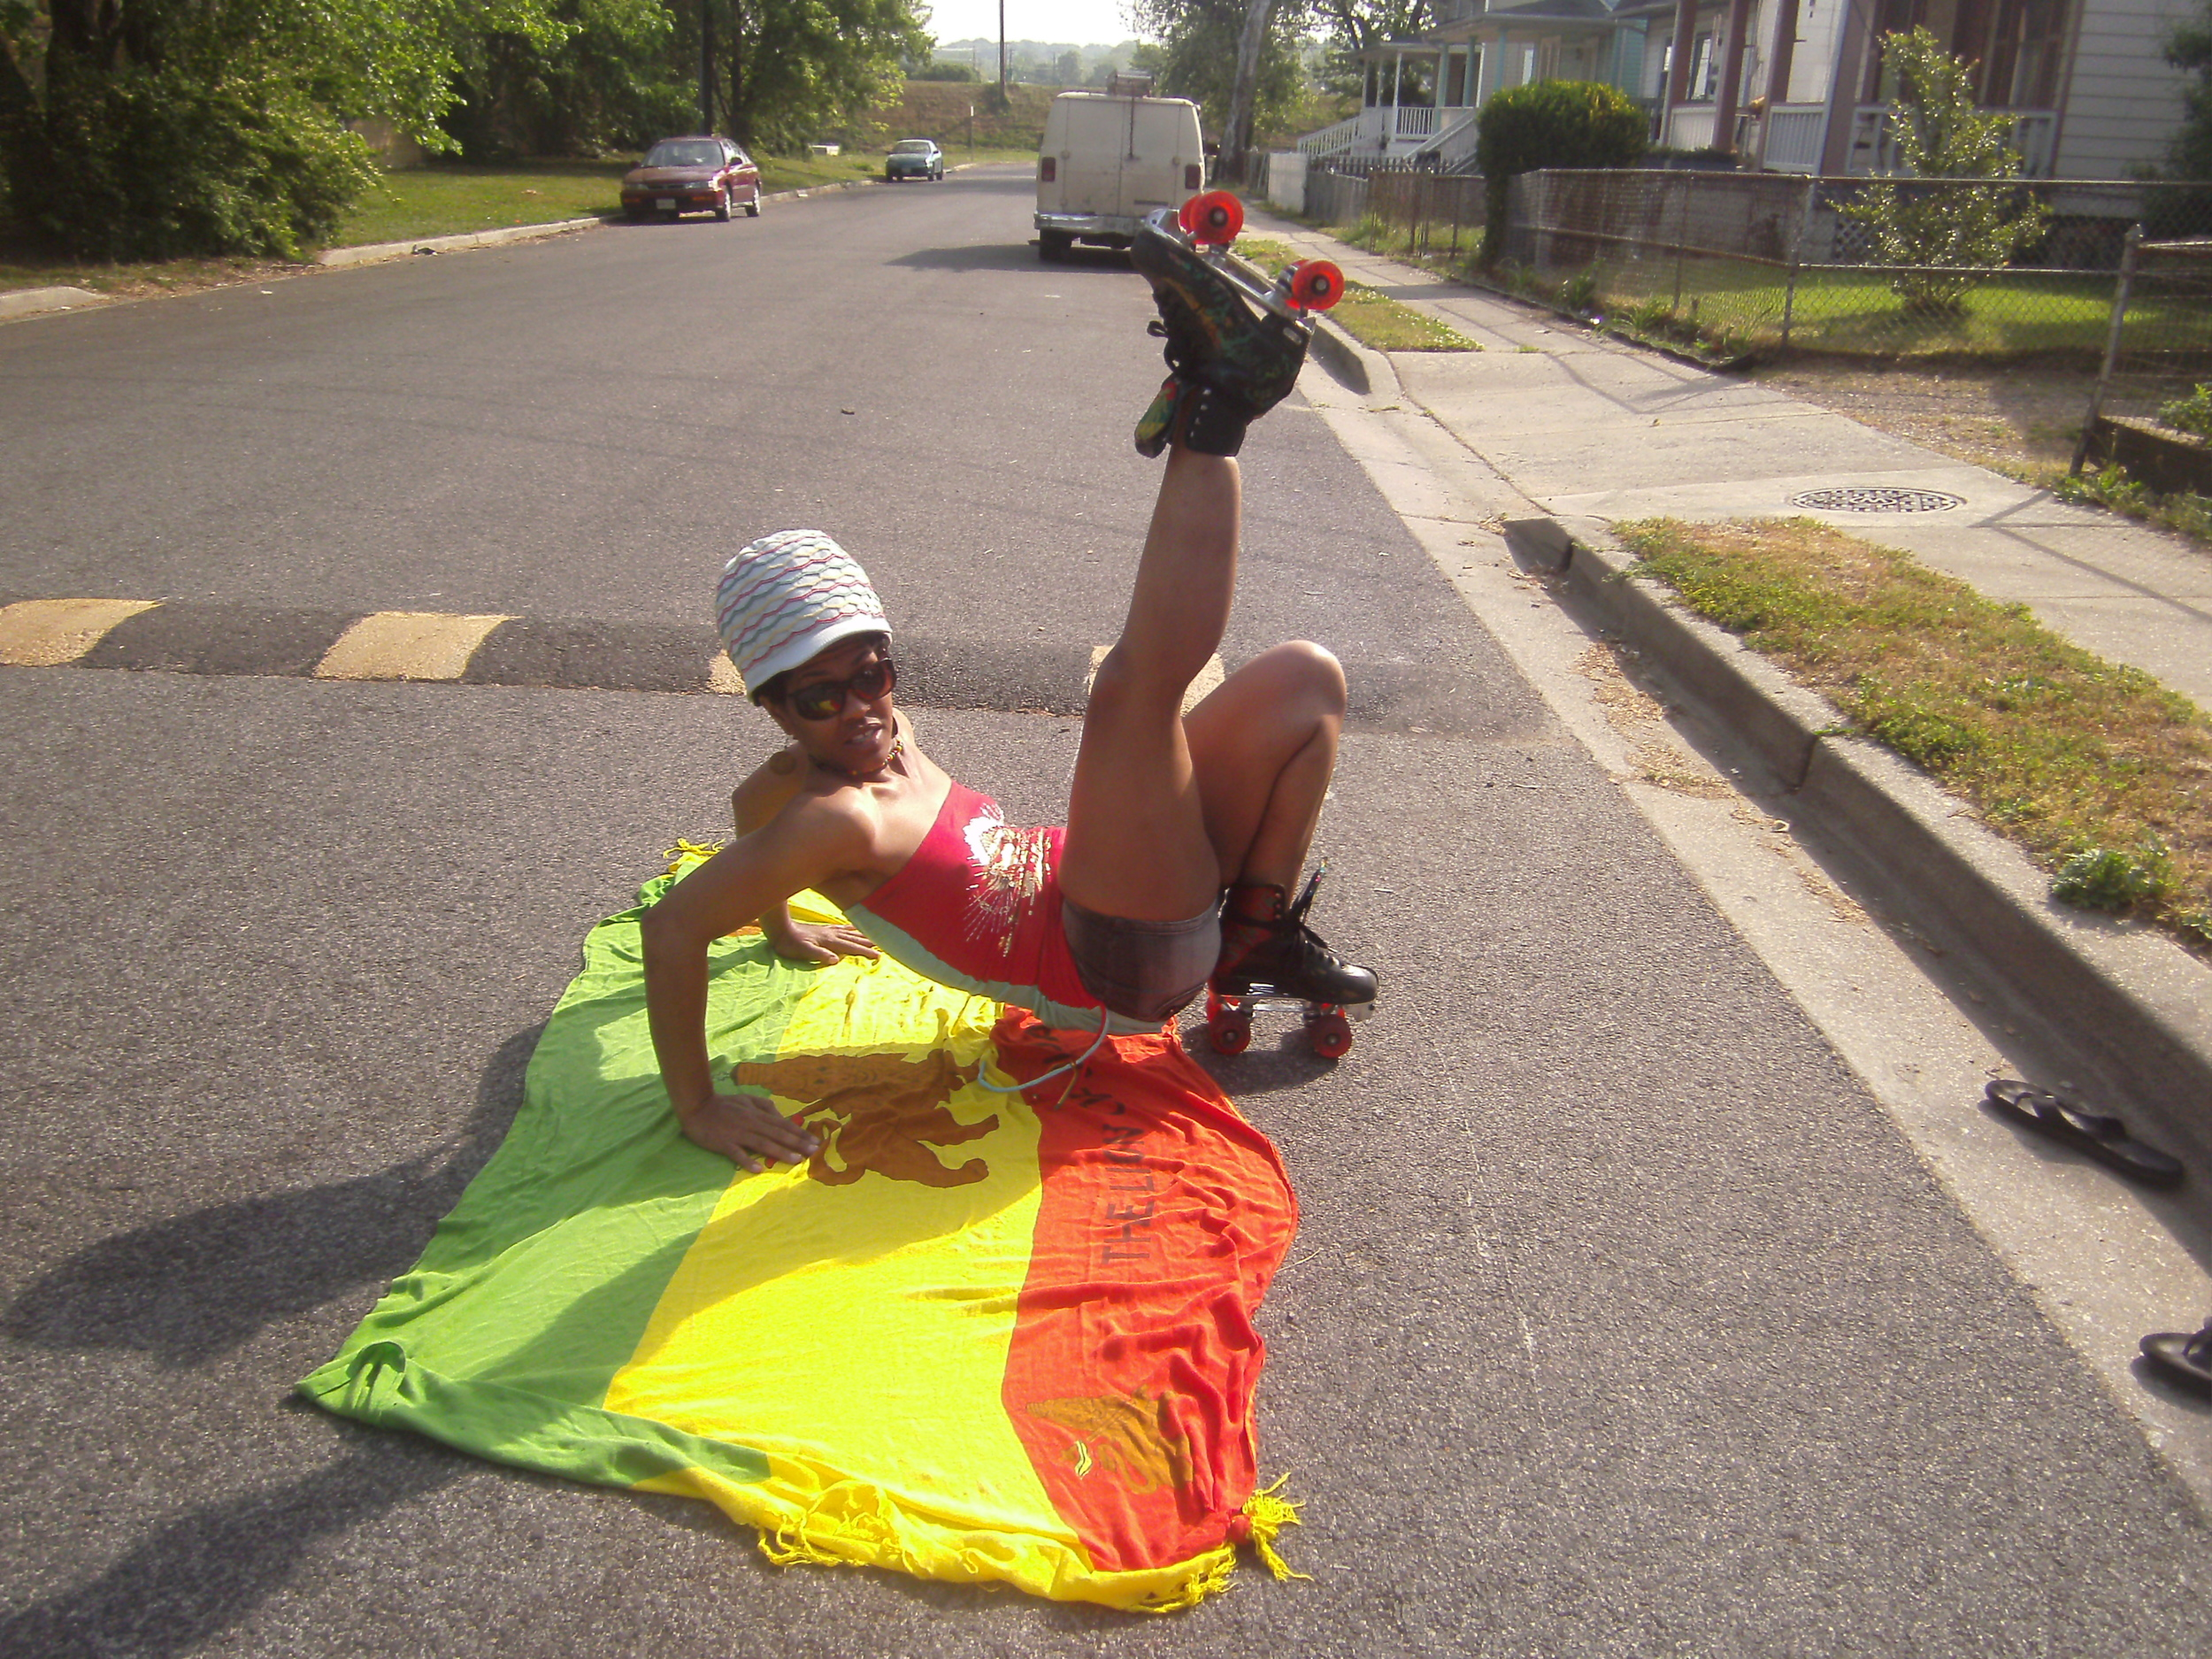 Monique Douglass, part of the Jah Rasta Rollers, showing pride and talent! Washington DC